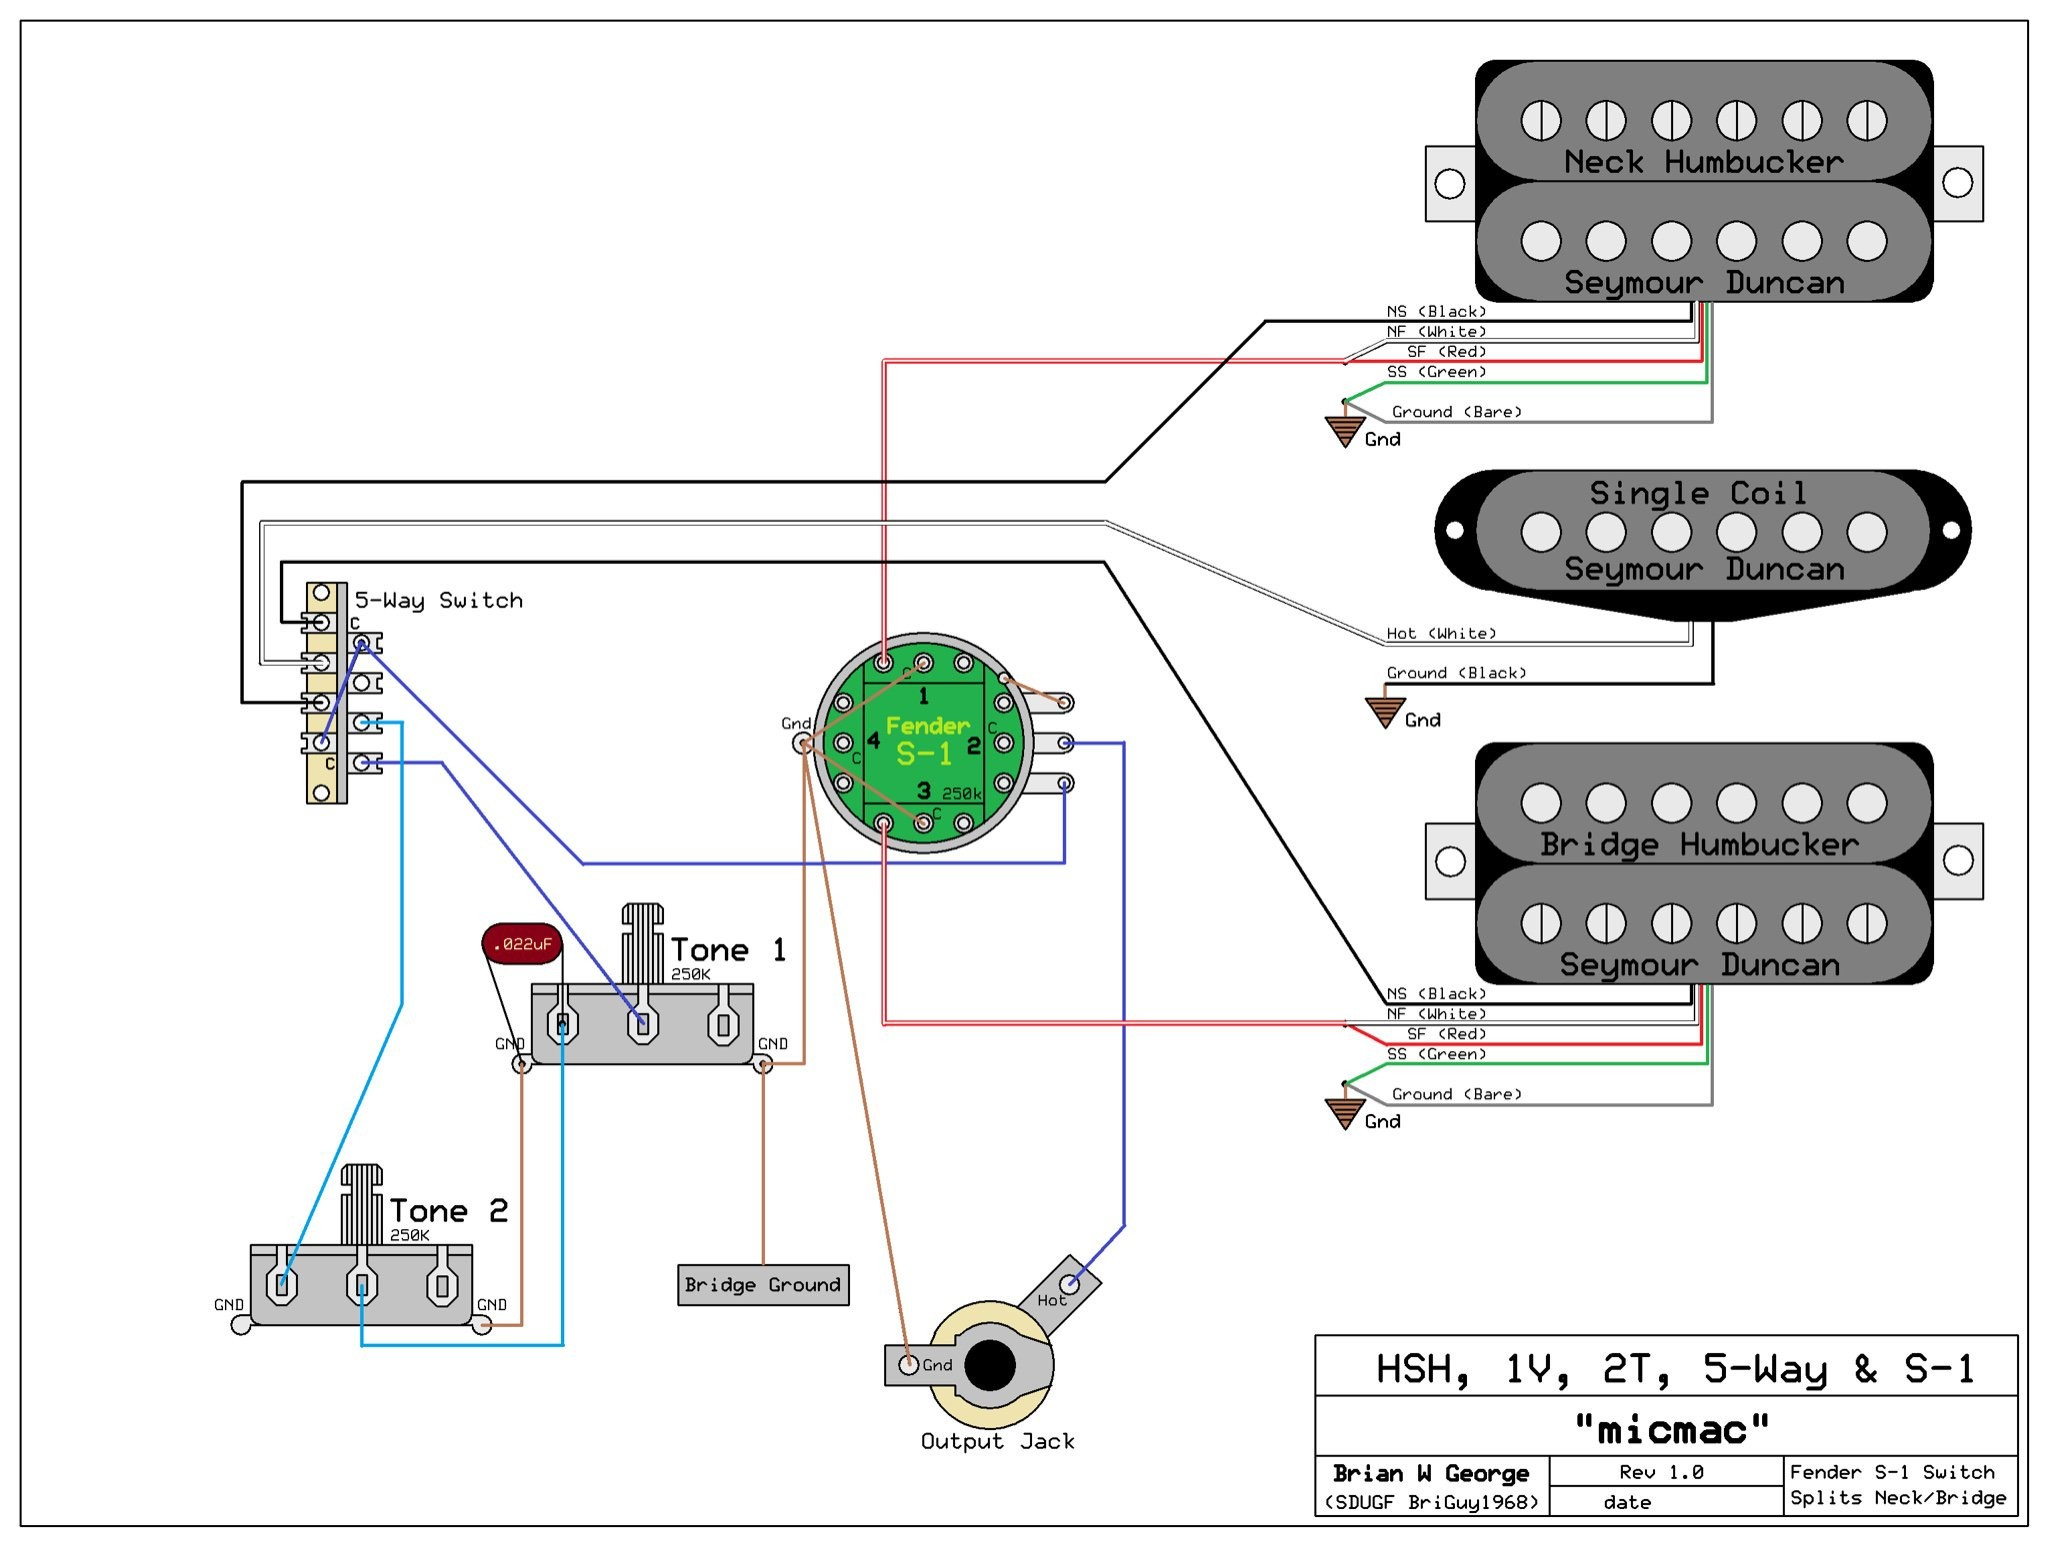 Wiring Diagram For 5 Way Guitar Switch Inspirationa Hsh Wiring Diagram 5 Way Switch Guitar Diagrams 3 Pickups Inside